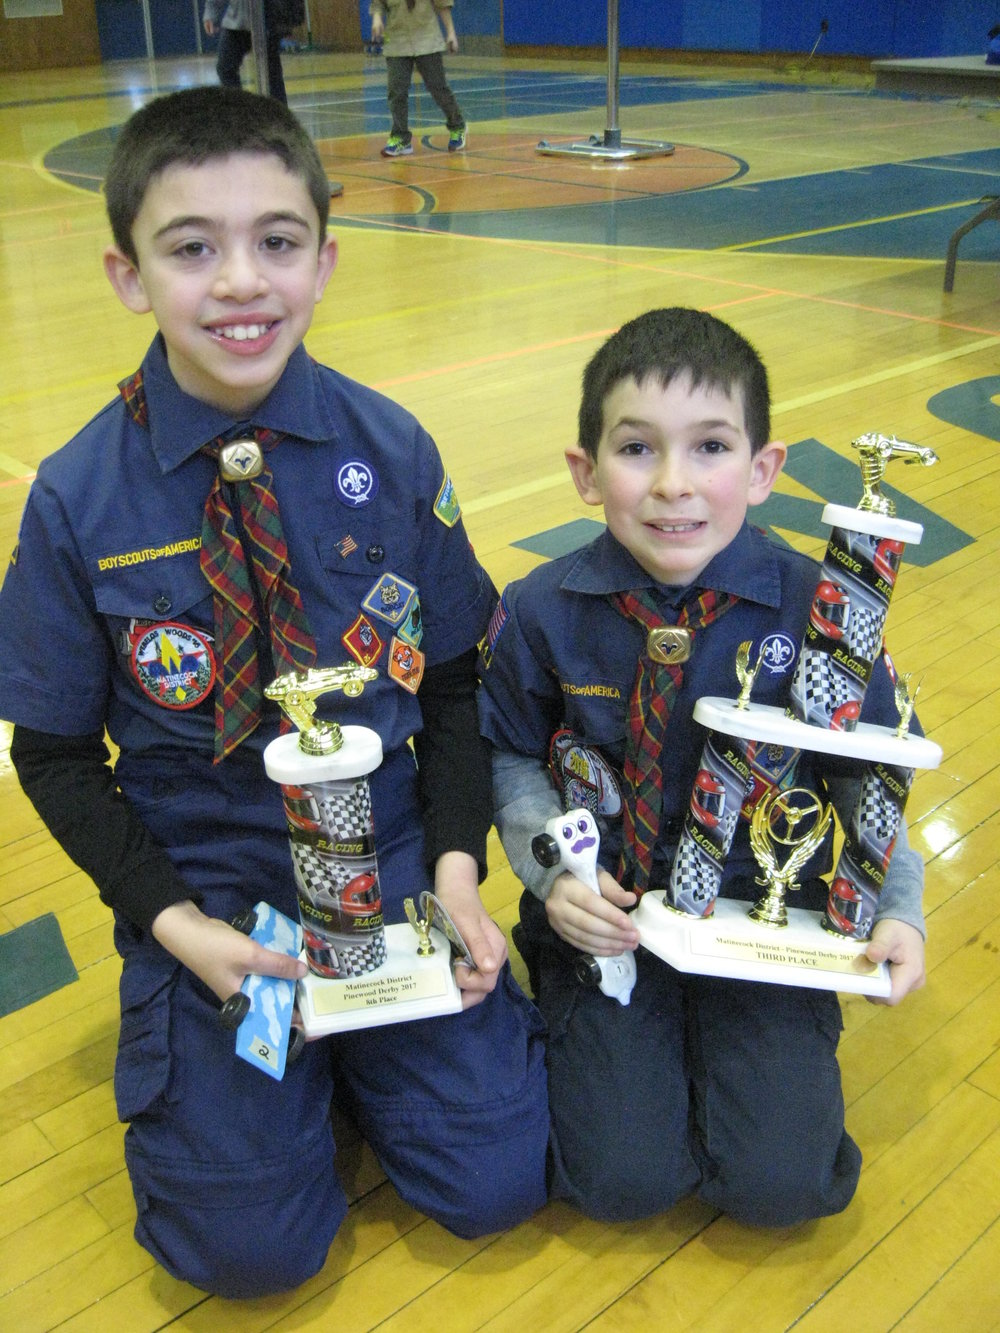 Third-place winner Mario M. Jr. and eigth-place winner Dominick S., both of East Northport's Pack 5,